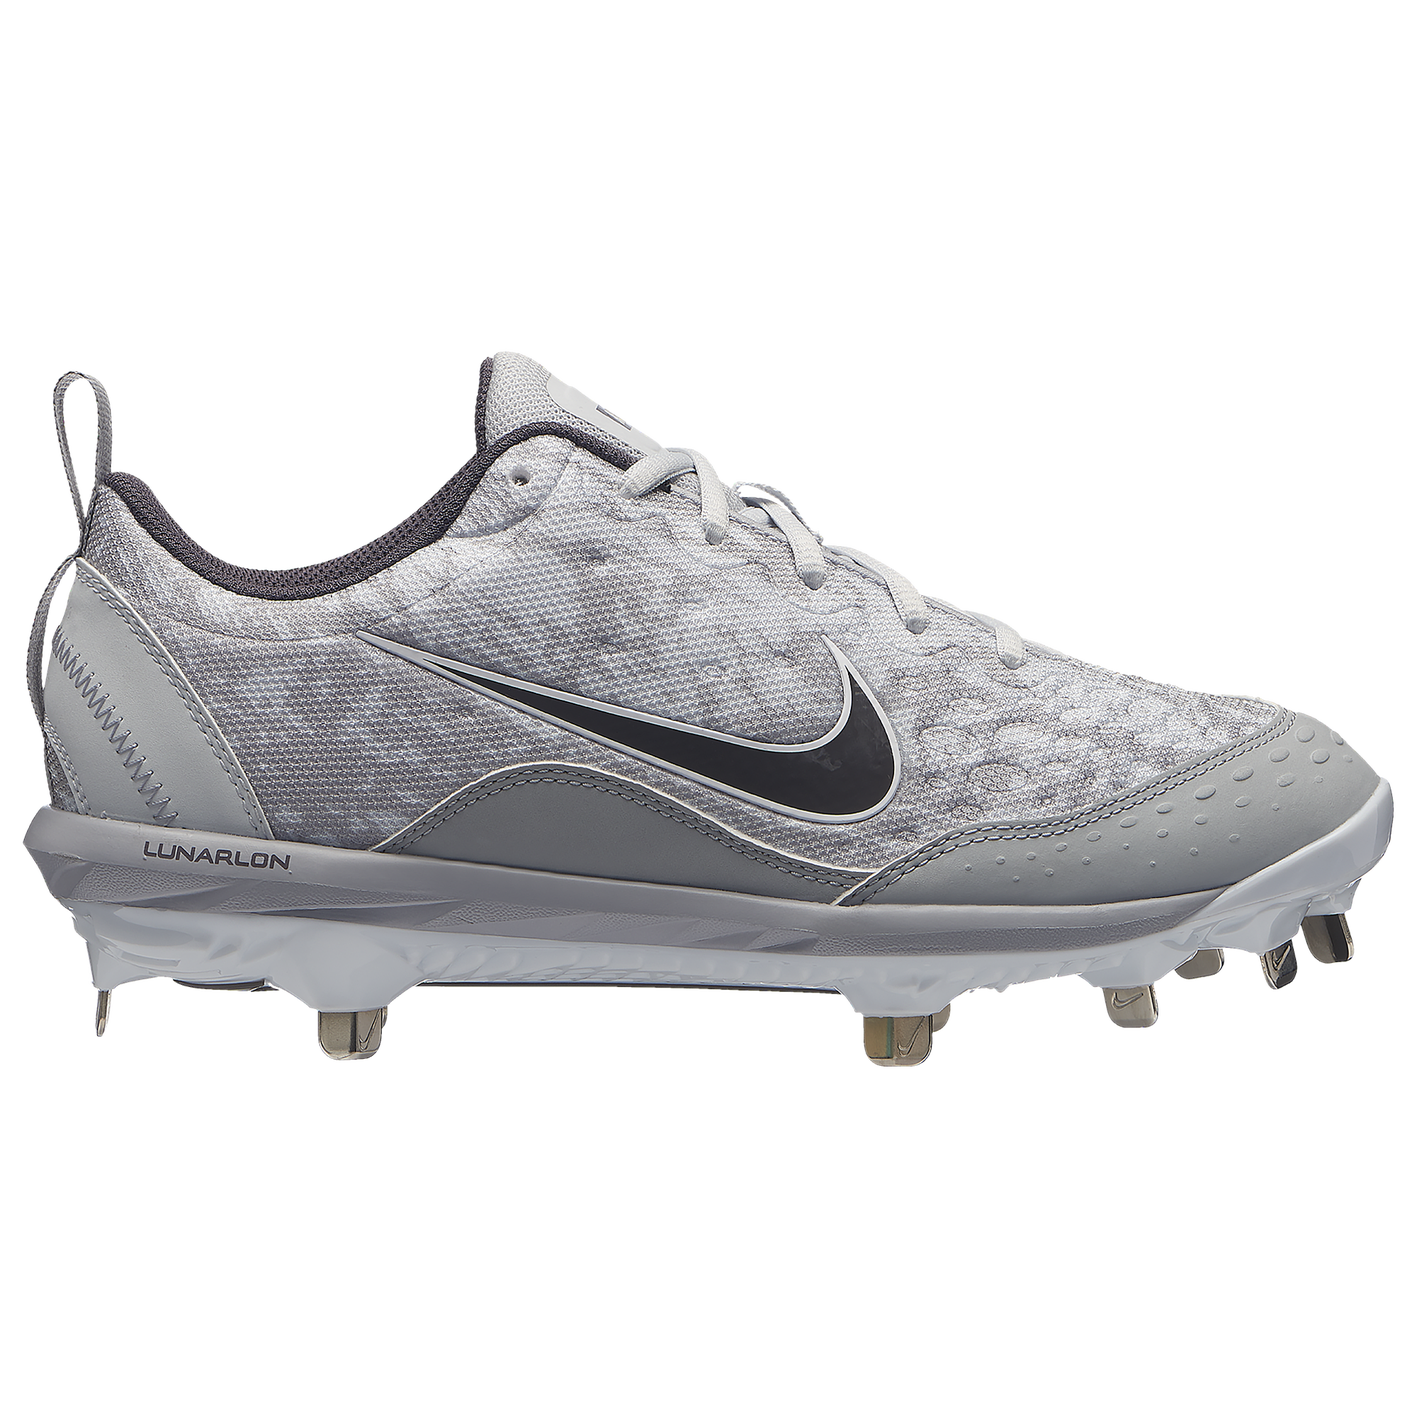 4d10d424621 Nike Hyperdiamond 2 Pro - Women s - Softball - Shoes - Wolf Grey ...